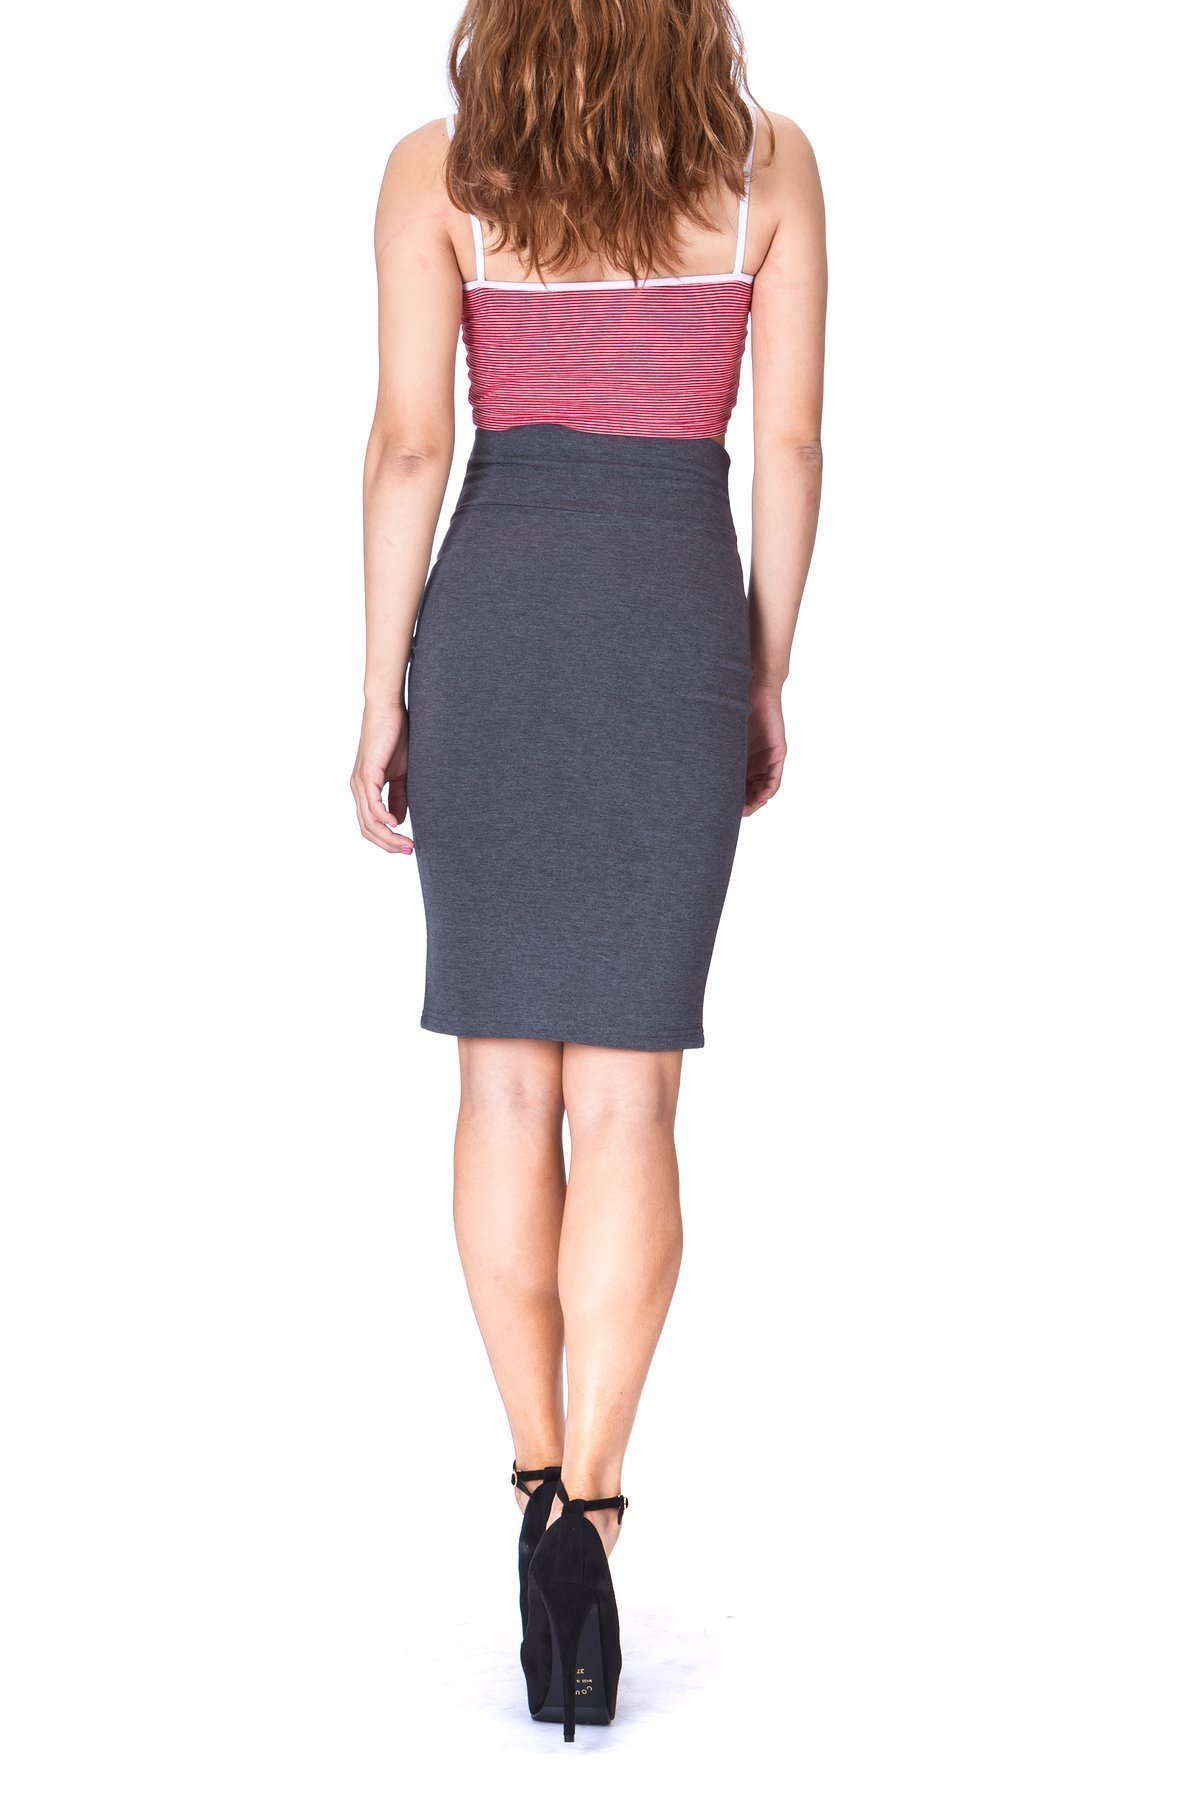 Every Occasion Stretch Pull on Wide High Waist Bodycon Pencil Knee Length Midi Skirt Charcoal 3